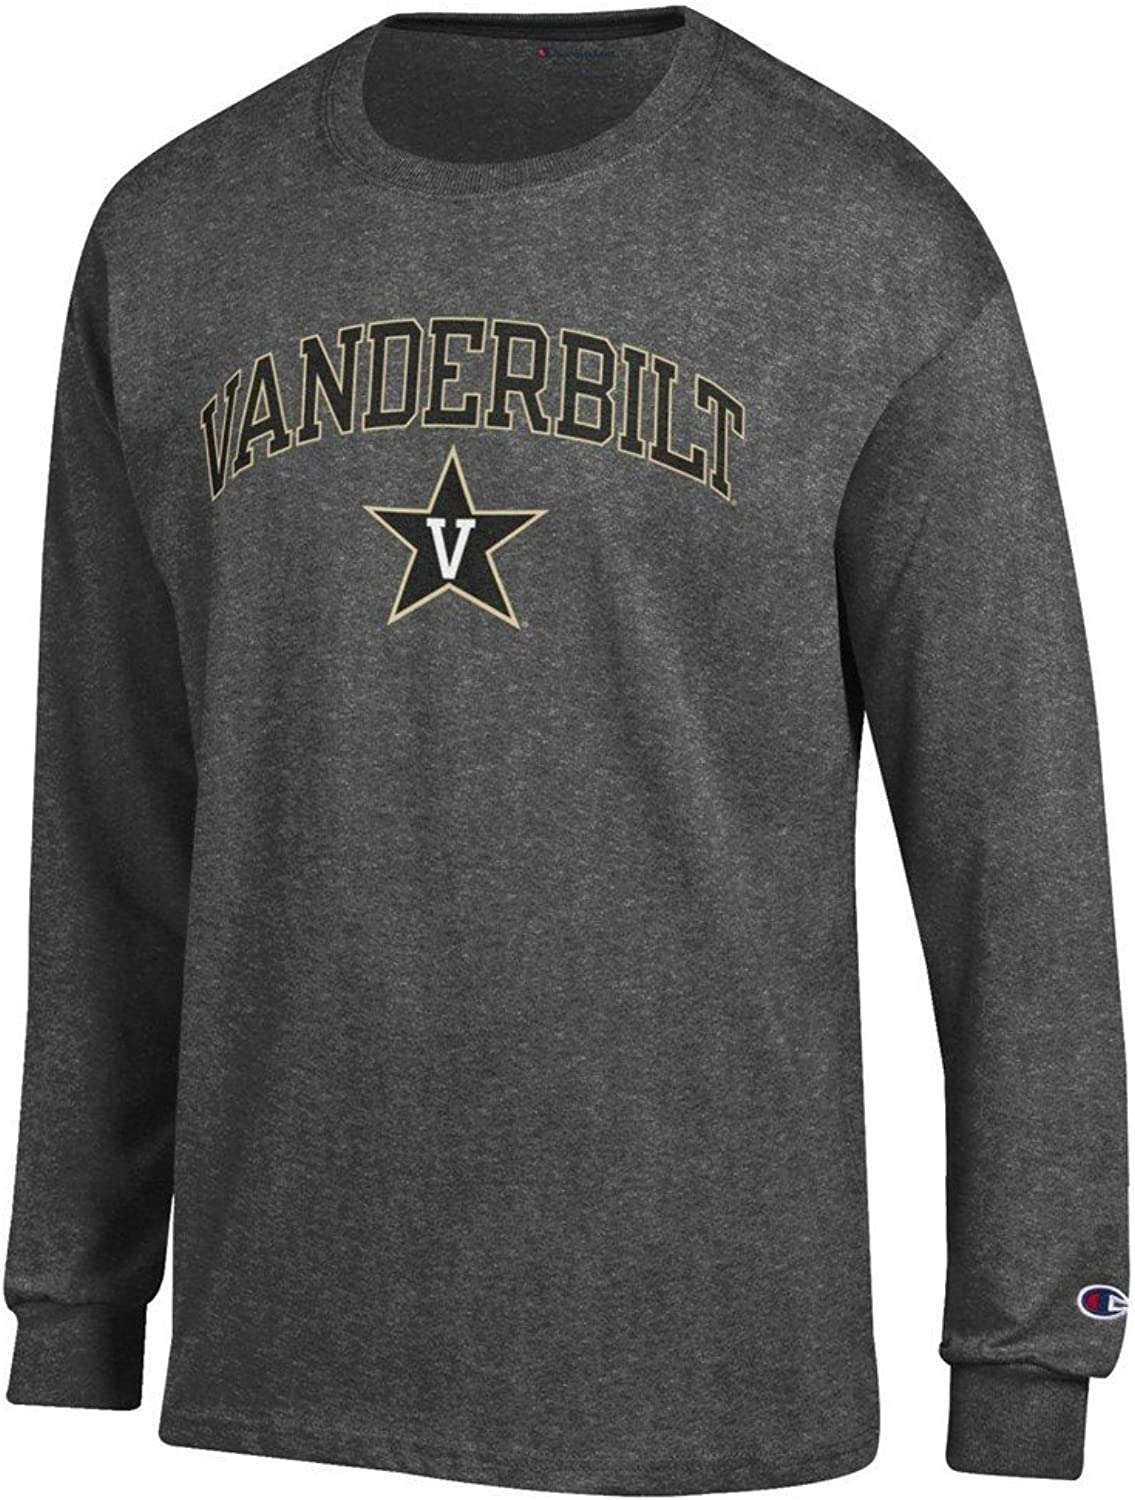 Vanderbilt Commodores Long Sleeve Tshirt Charcoal